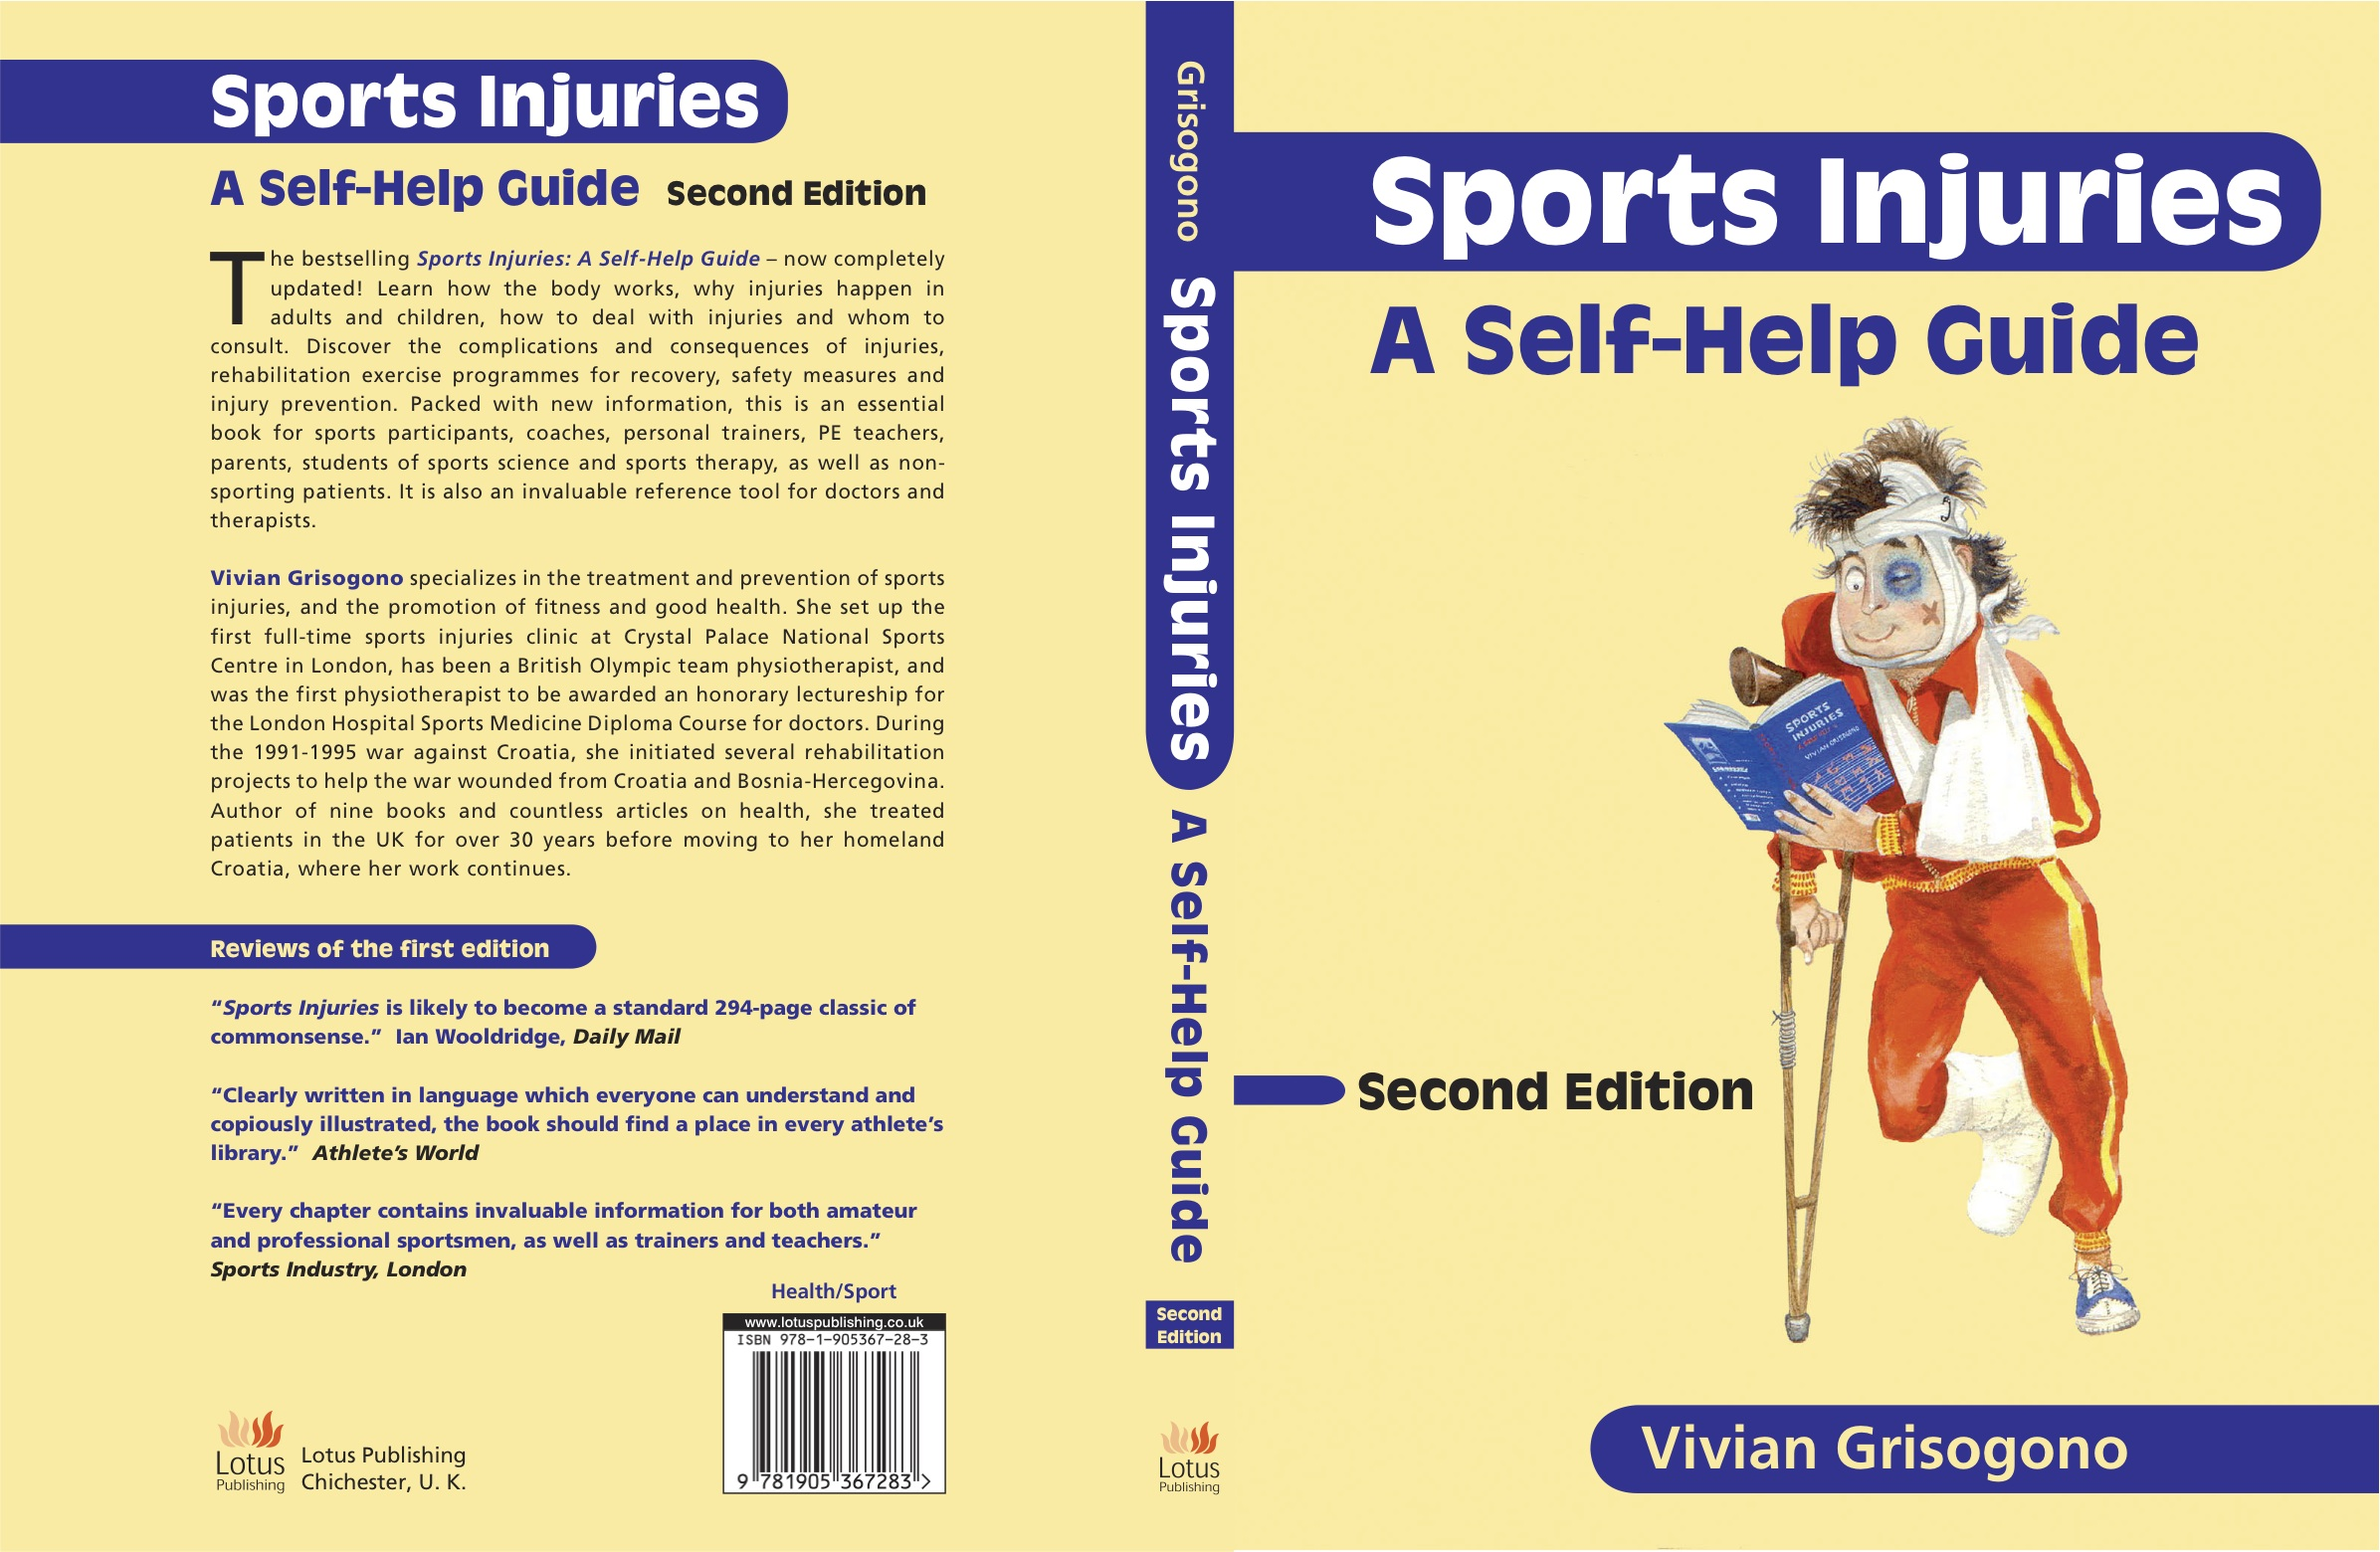 Sports Injuries, A Self-Help Guide, 2nd edition